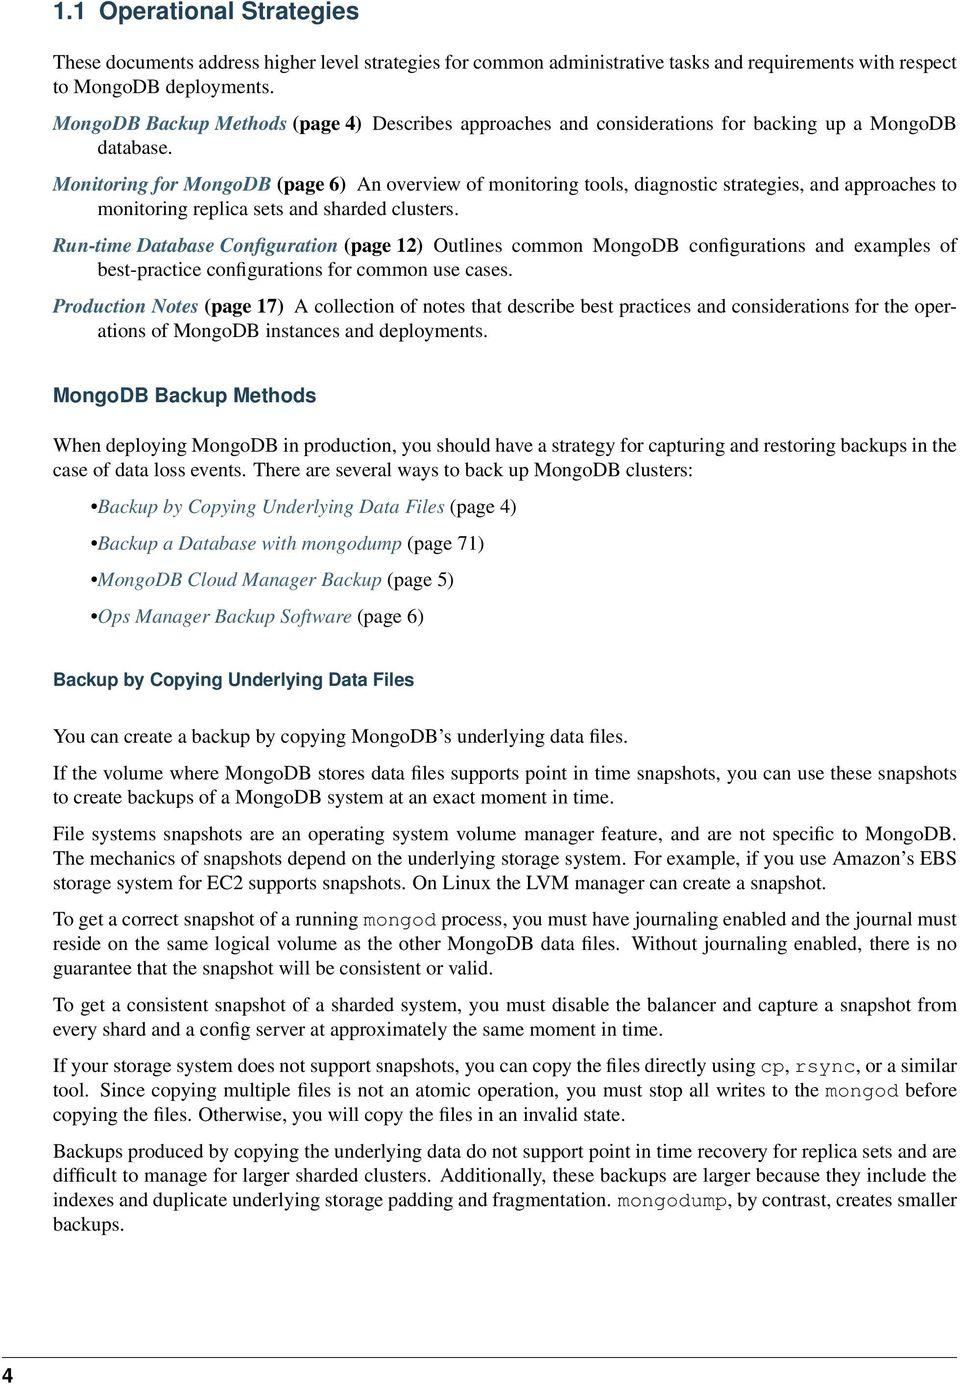 Monitoring for MongoDB (page 6) An overview of monitoring tools, diagnostic strategies, and approaches to monitoring replica sets and sharded clusters.